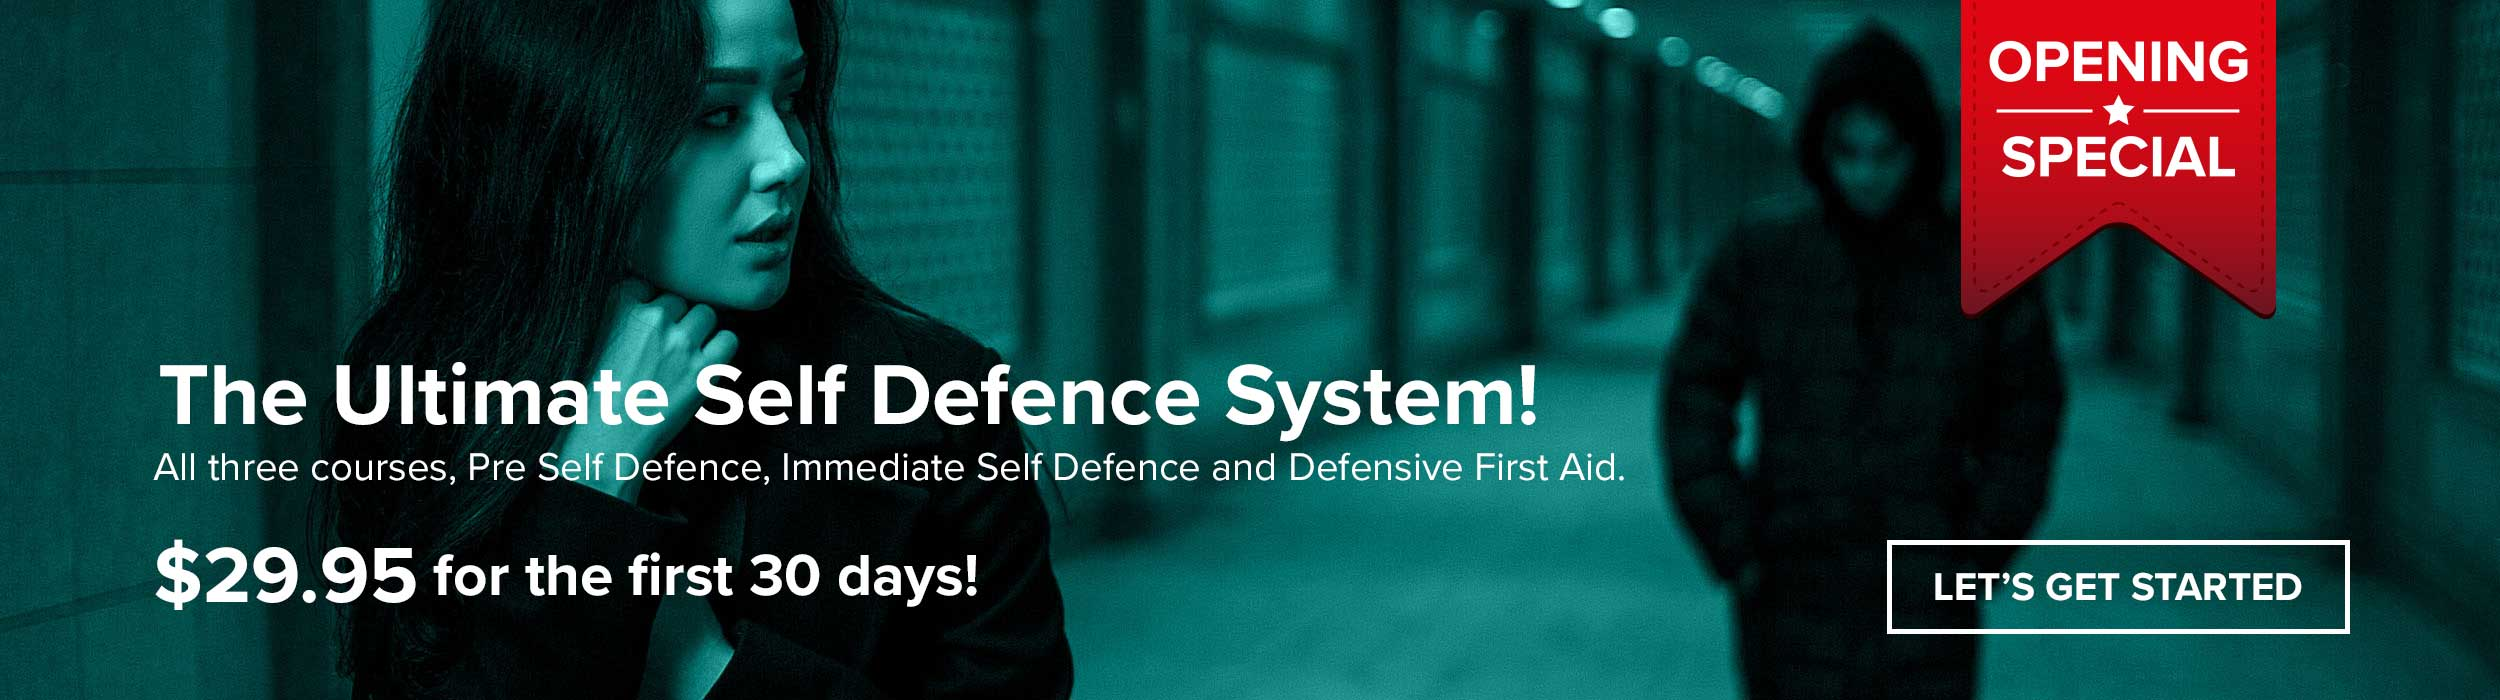 Pre Self Defence Bundle Banner